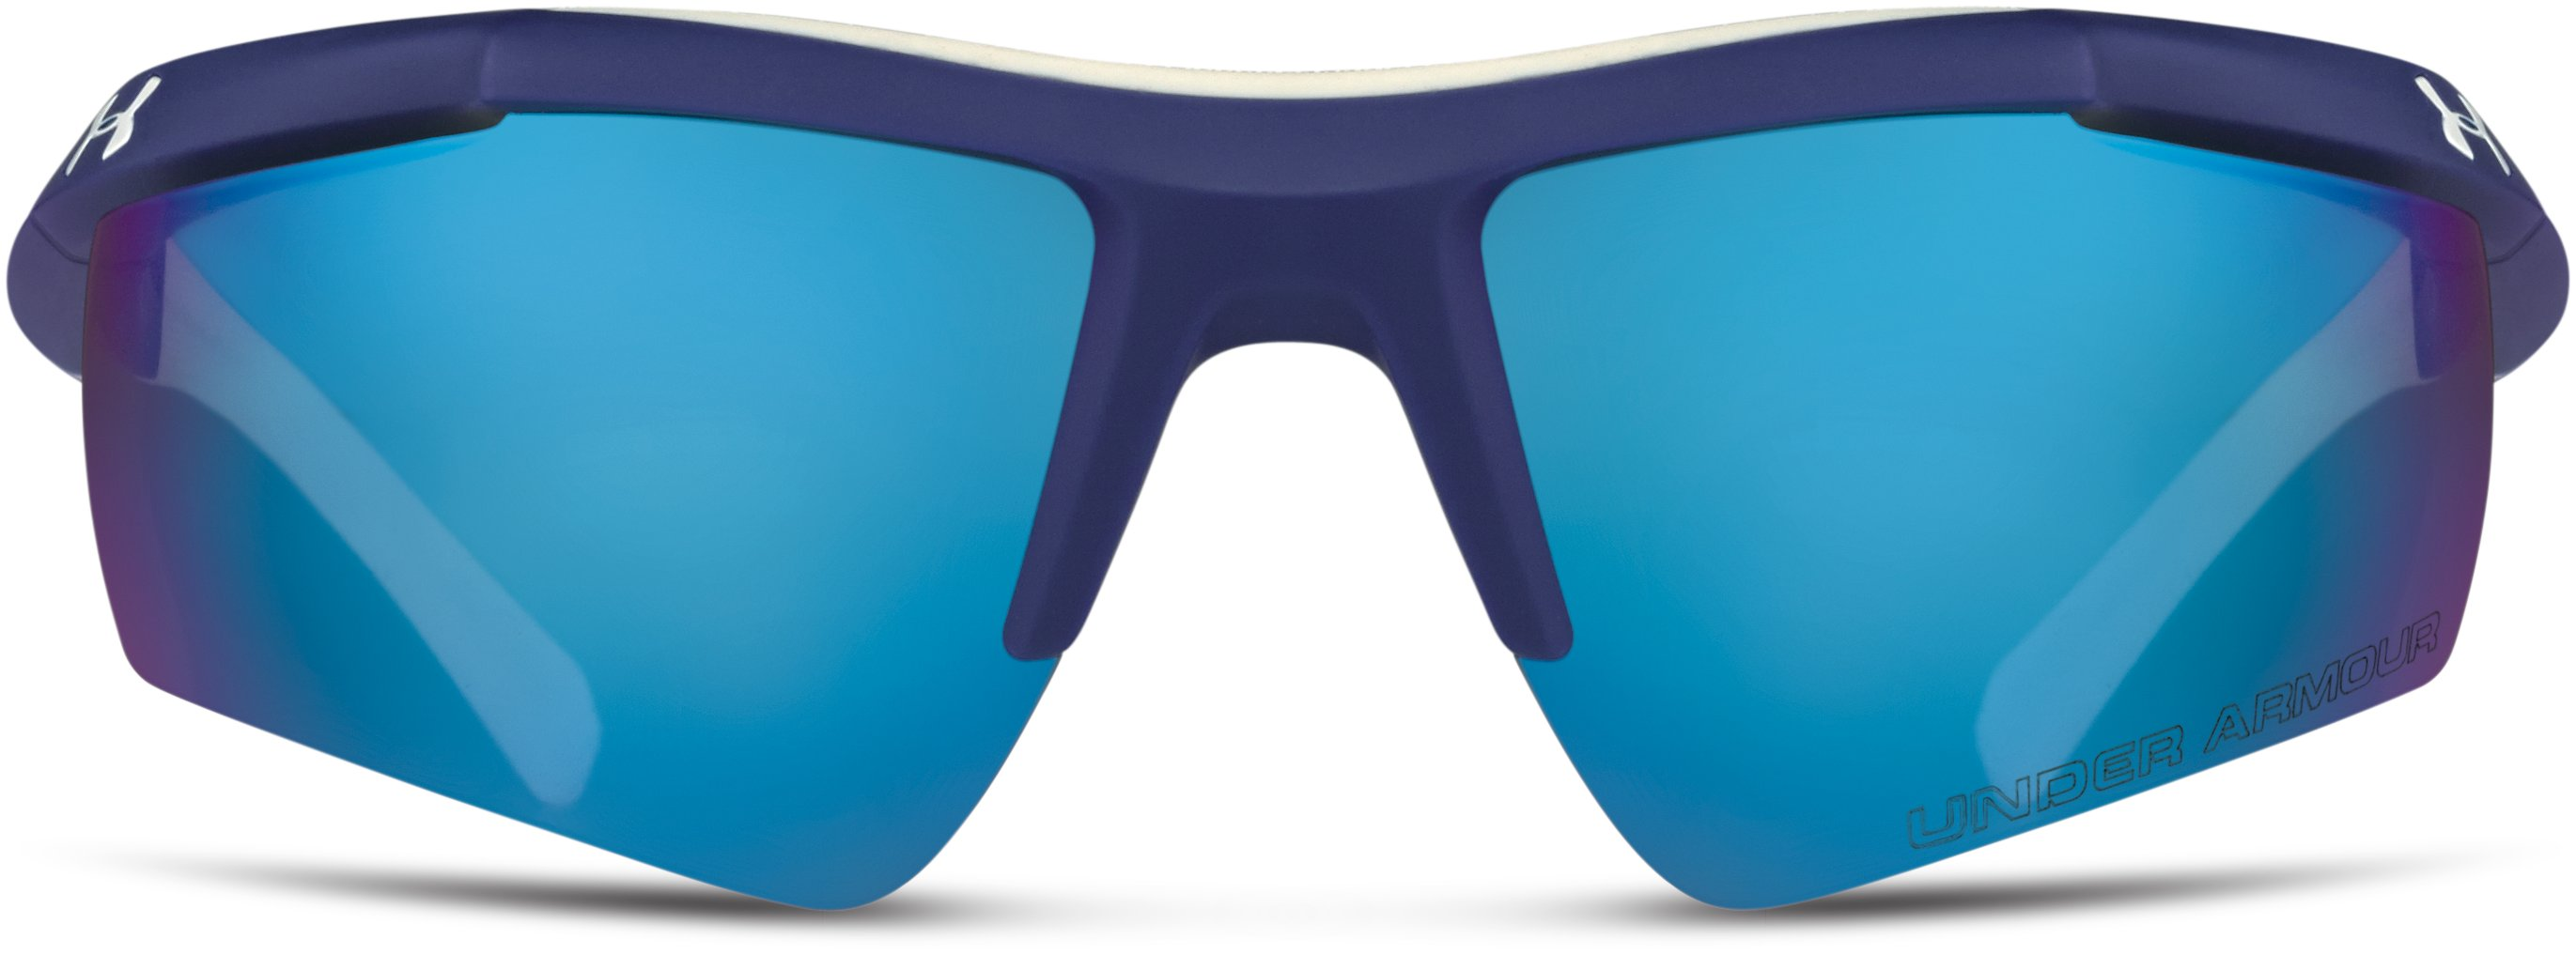 UA Core Sunglasses, Black